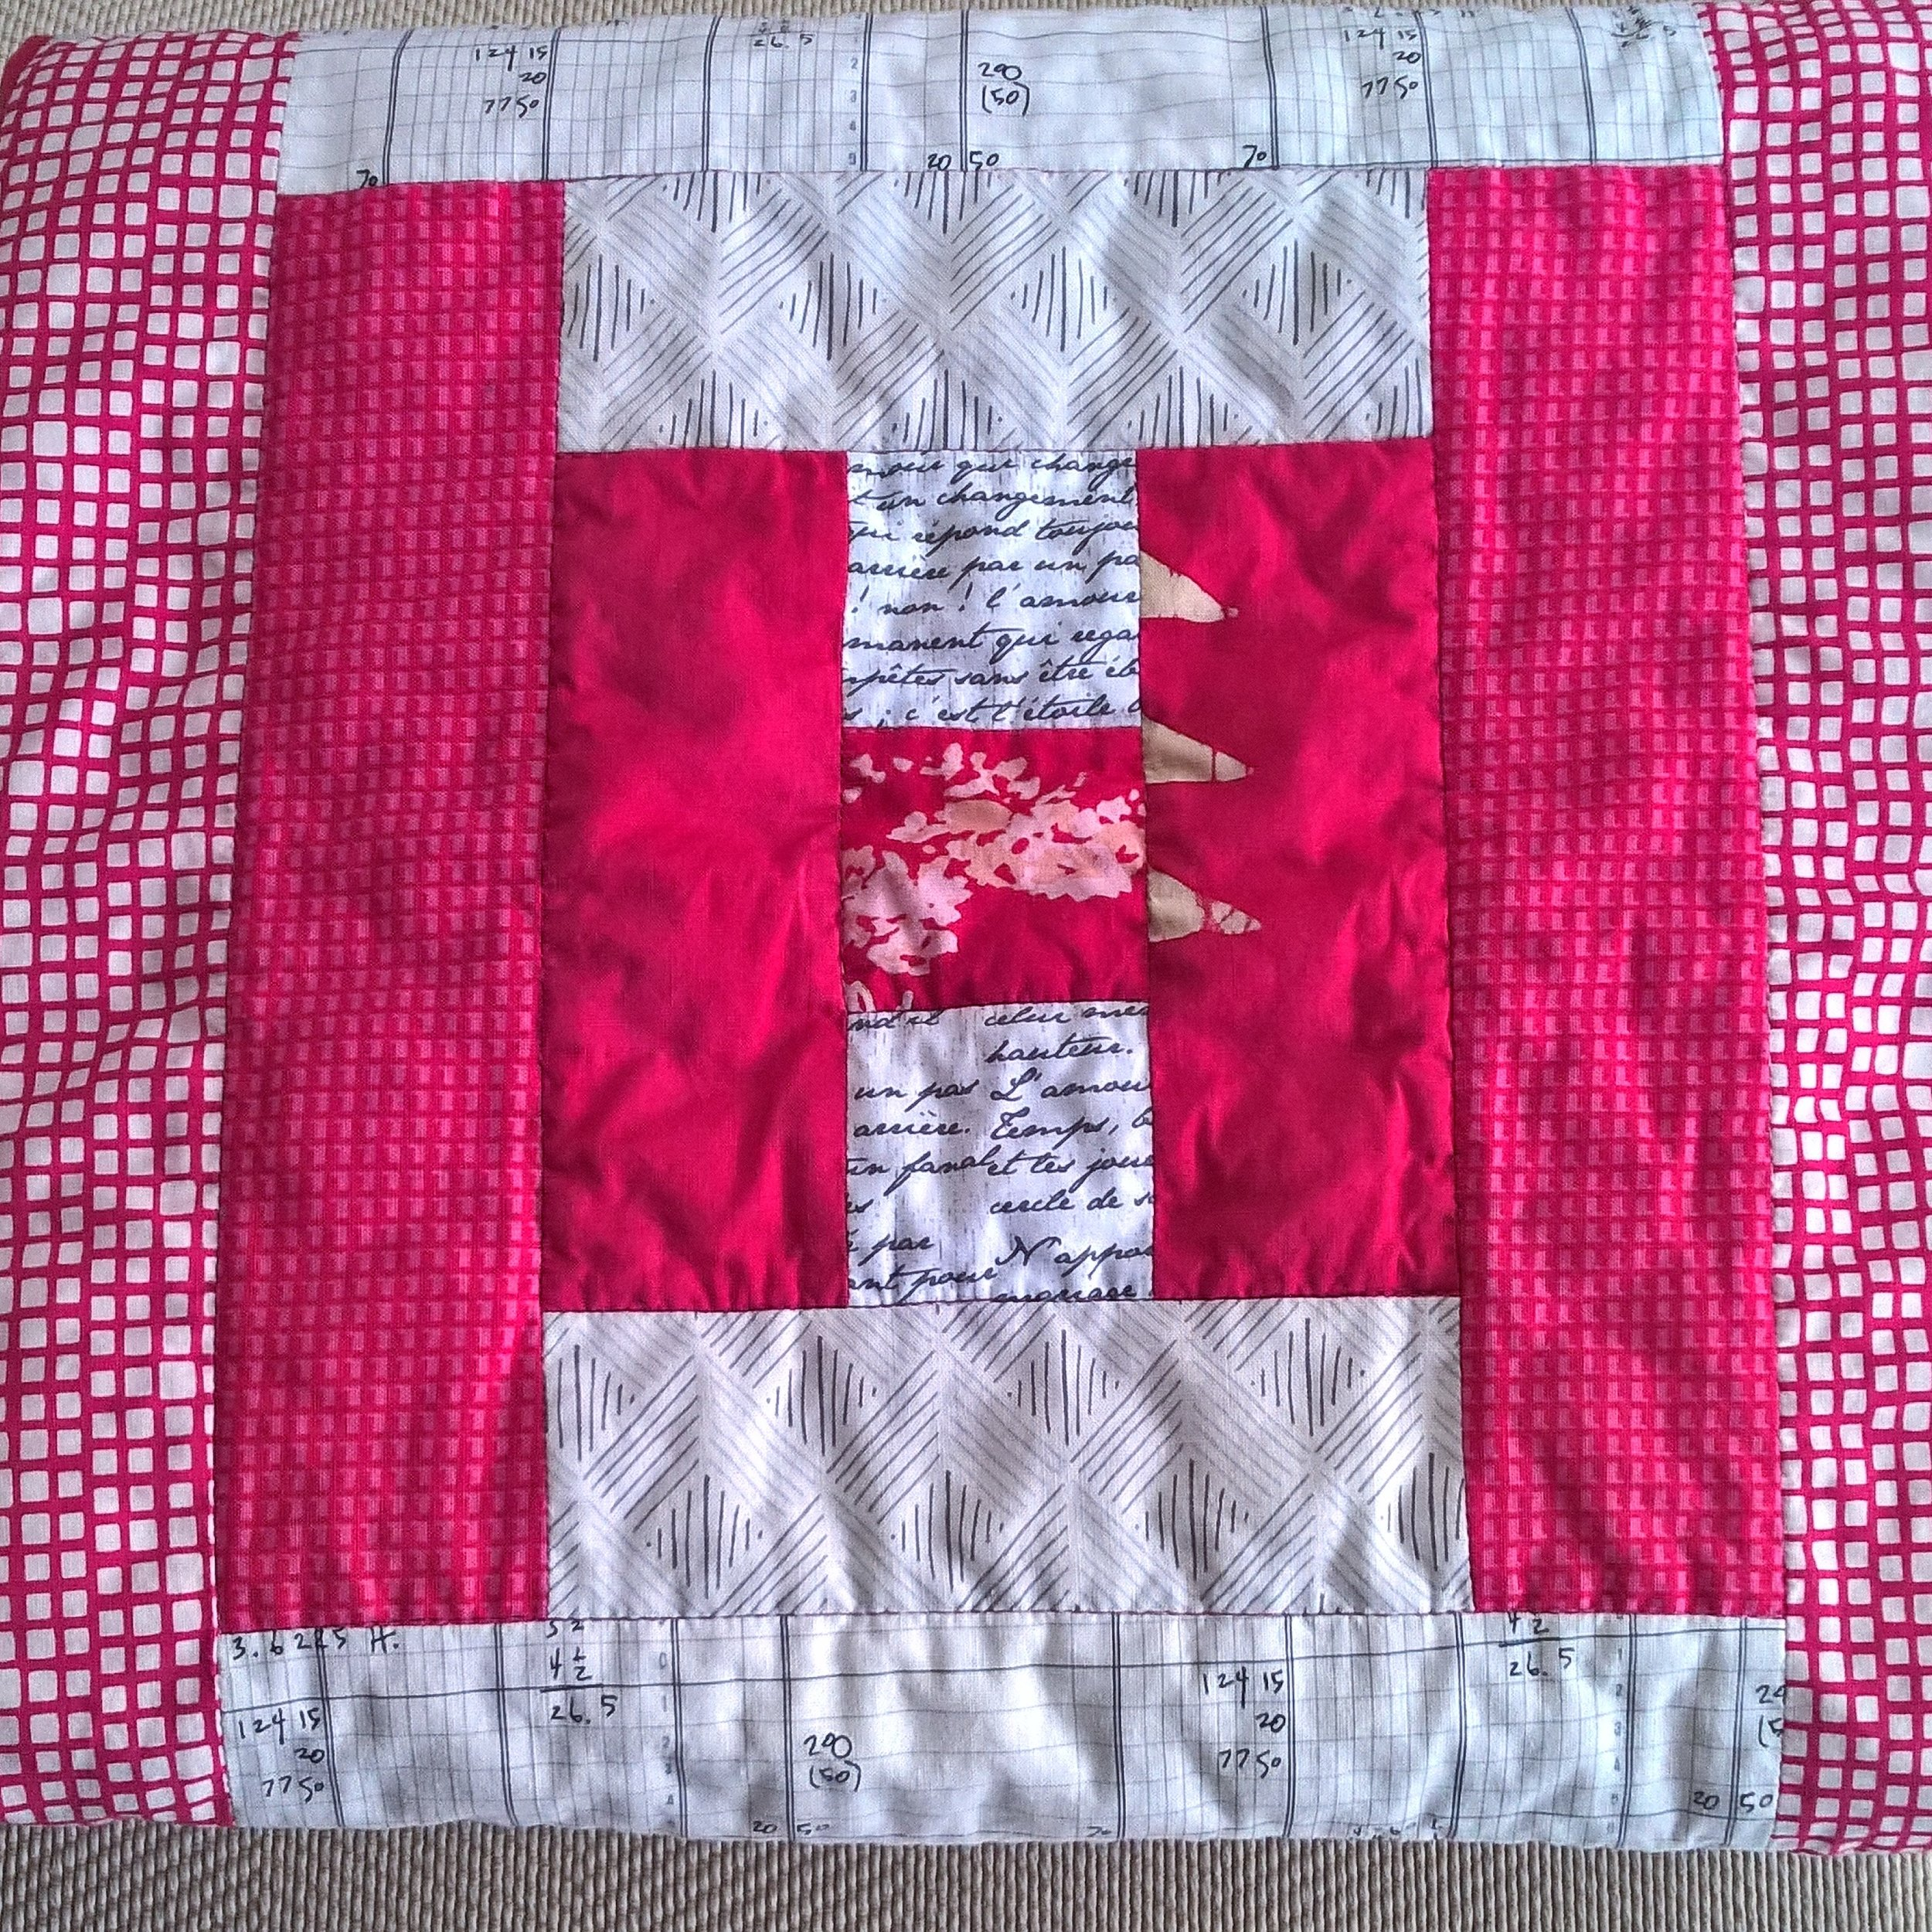 This quilt was a fun and quick finish!